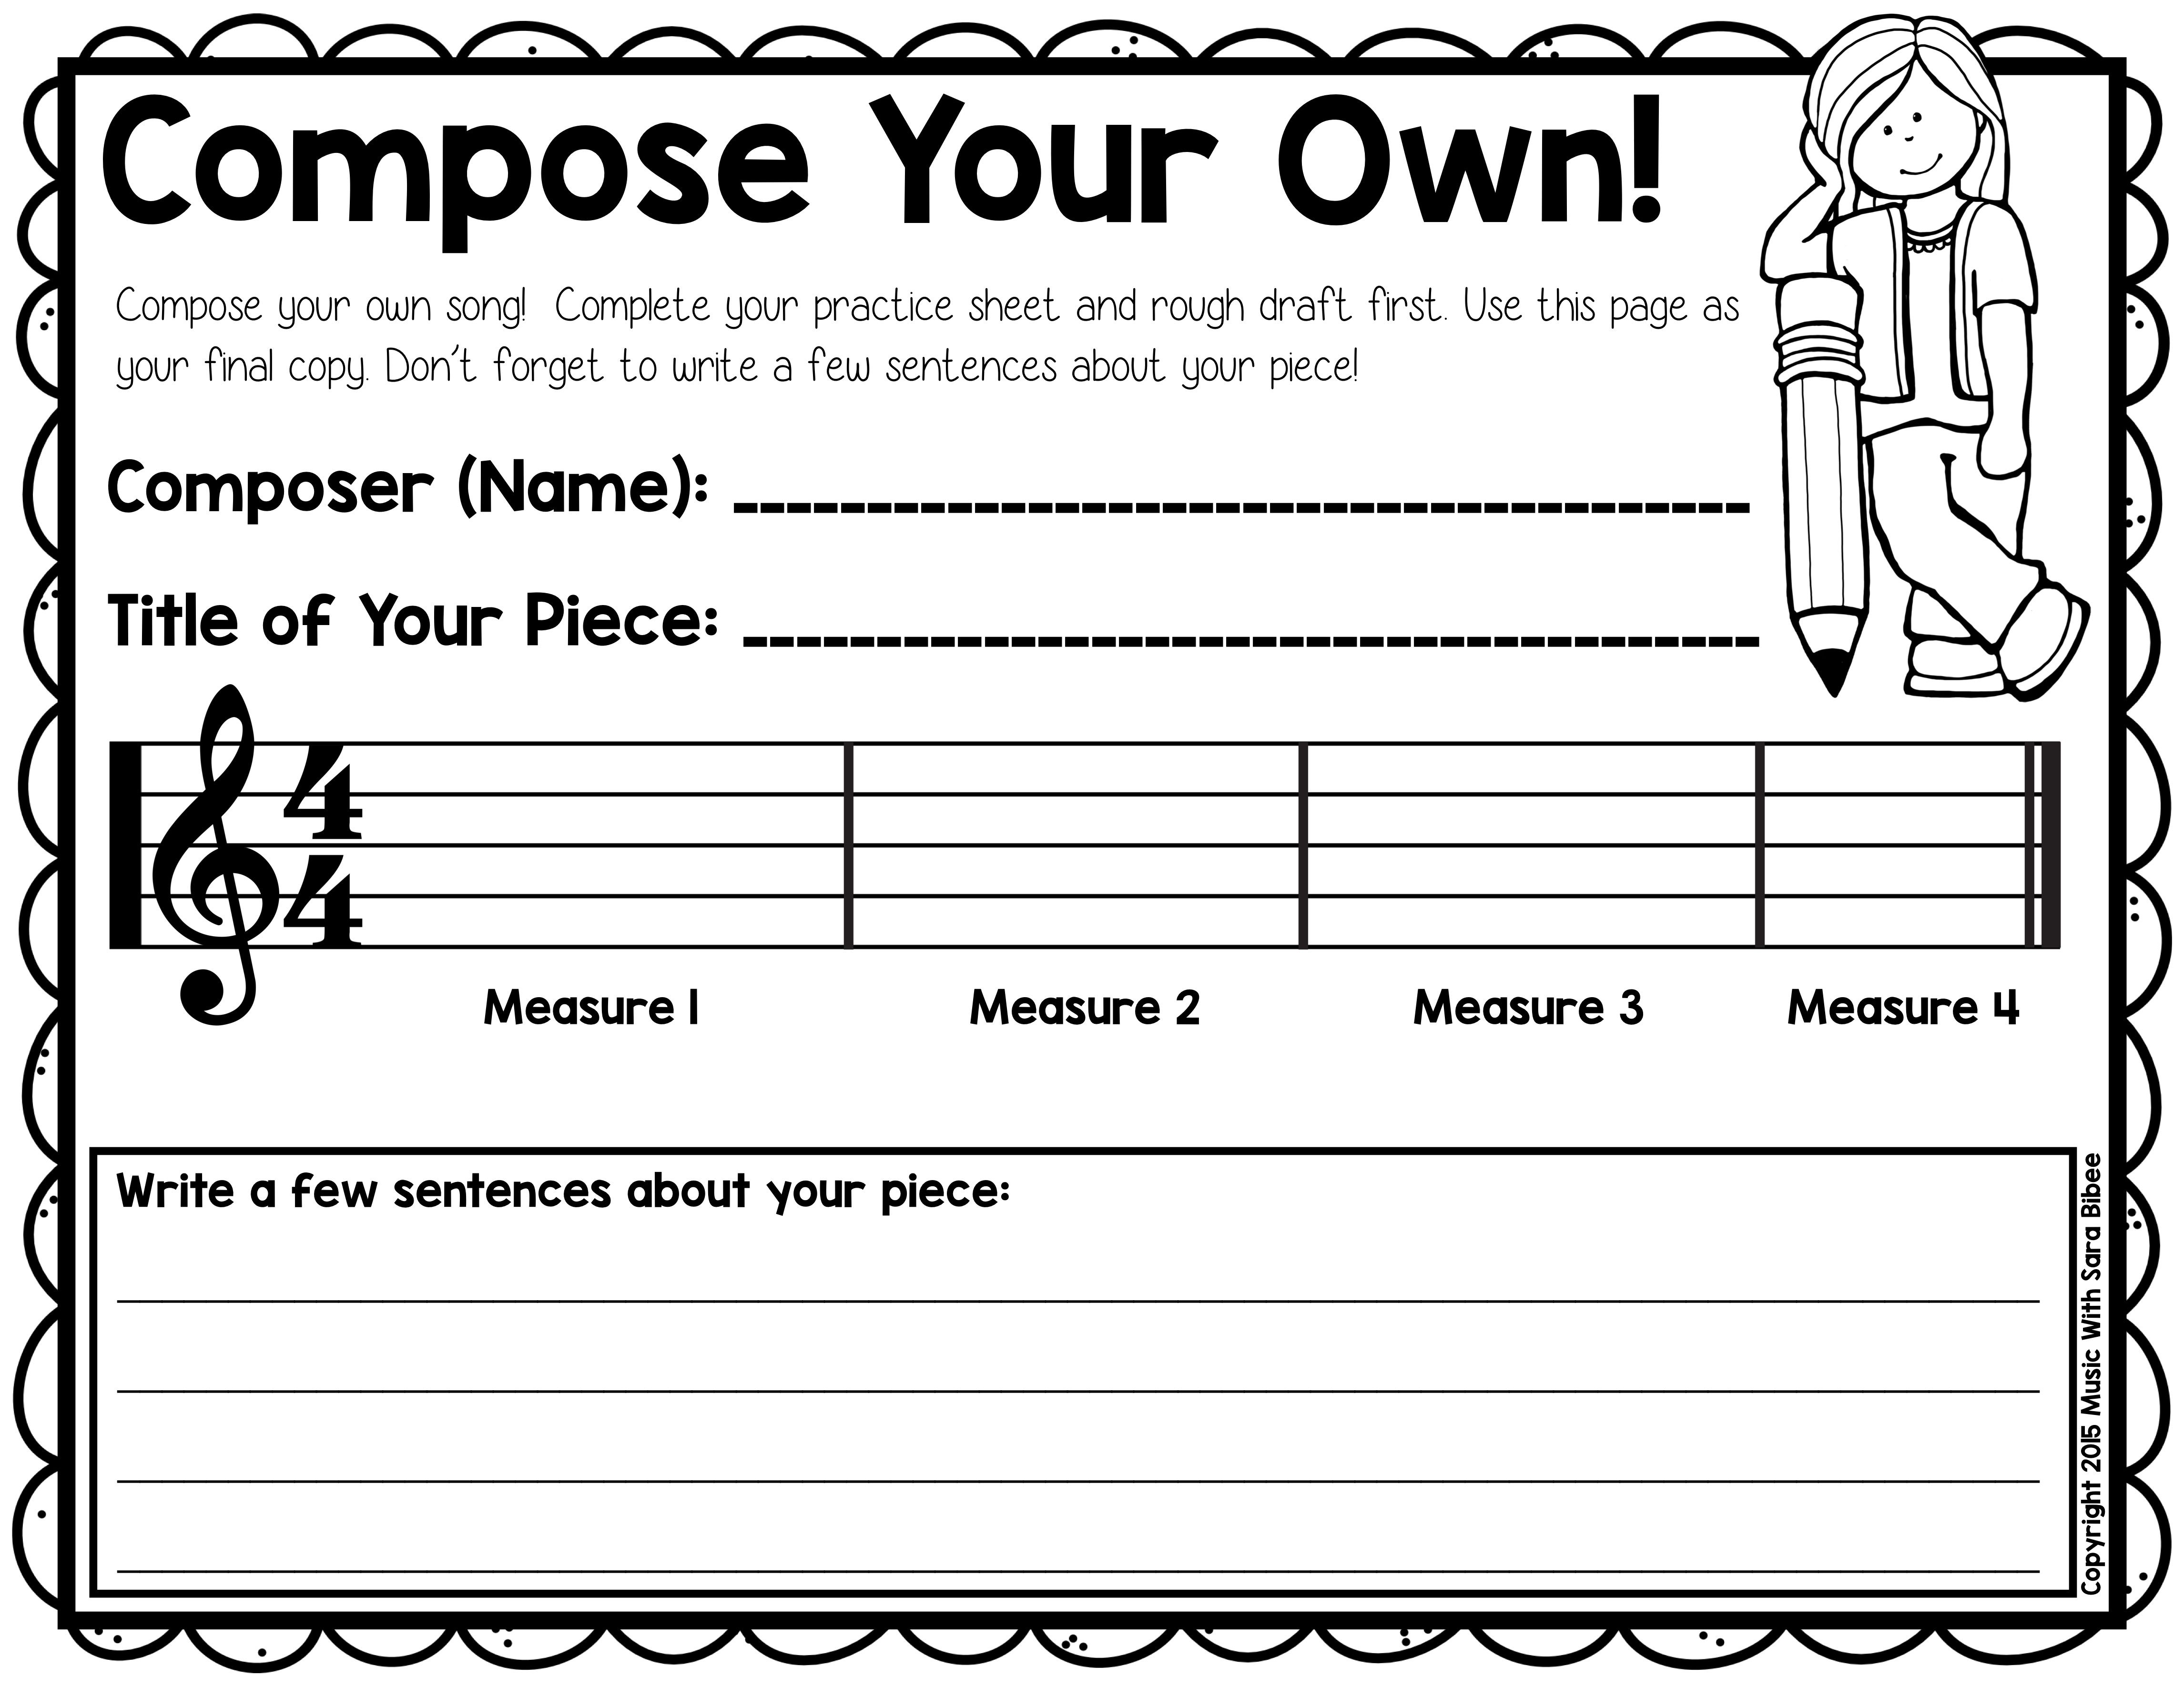 Worksheets General Music Worksheets free composition activity that can be used for recorders or in general music